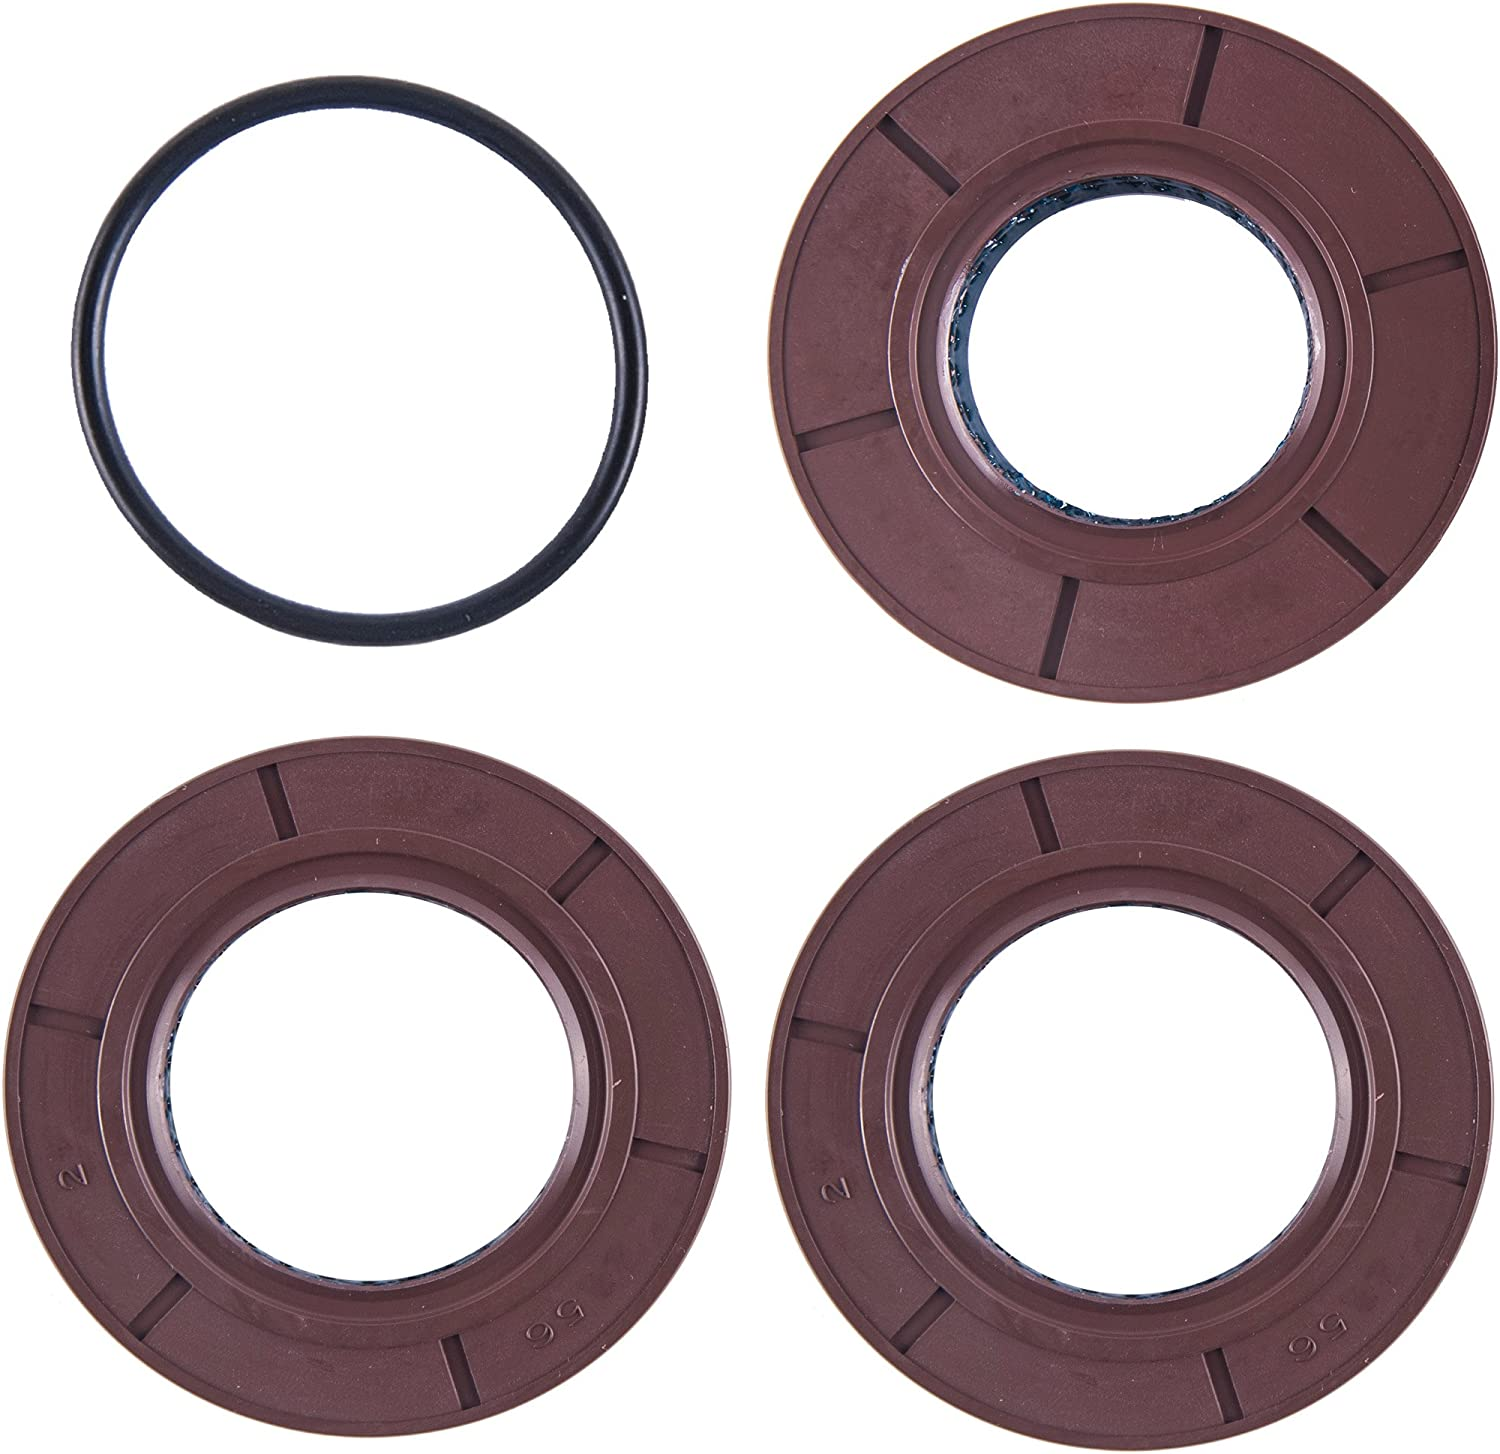 REPLACEMENTKITS.COM Brand Fits Polaris Rear Differential Gear Case Seal Replaces 3610146